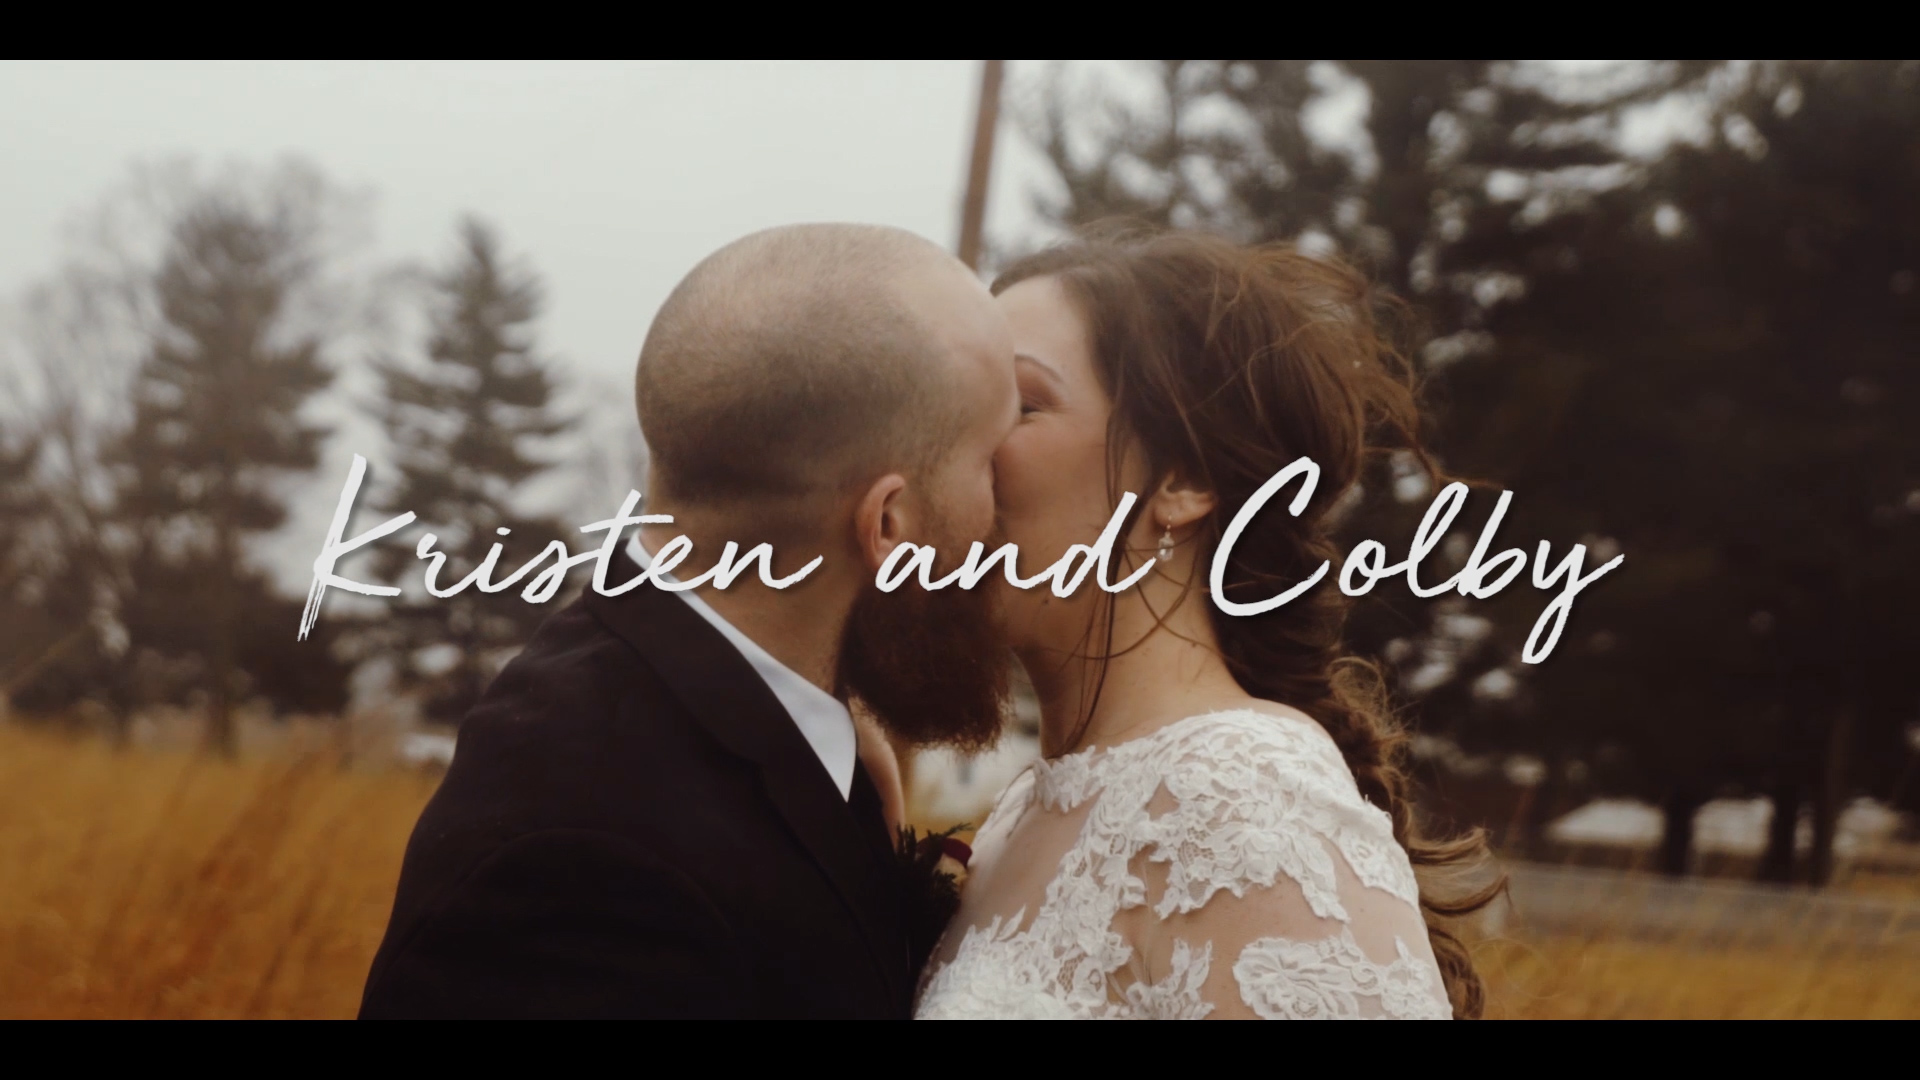 Kristen and Colby